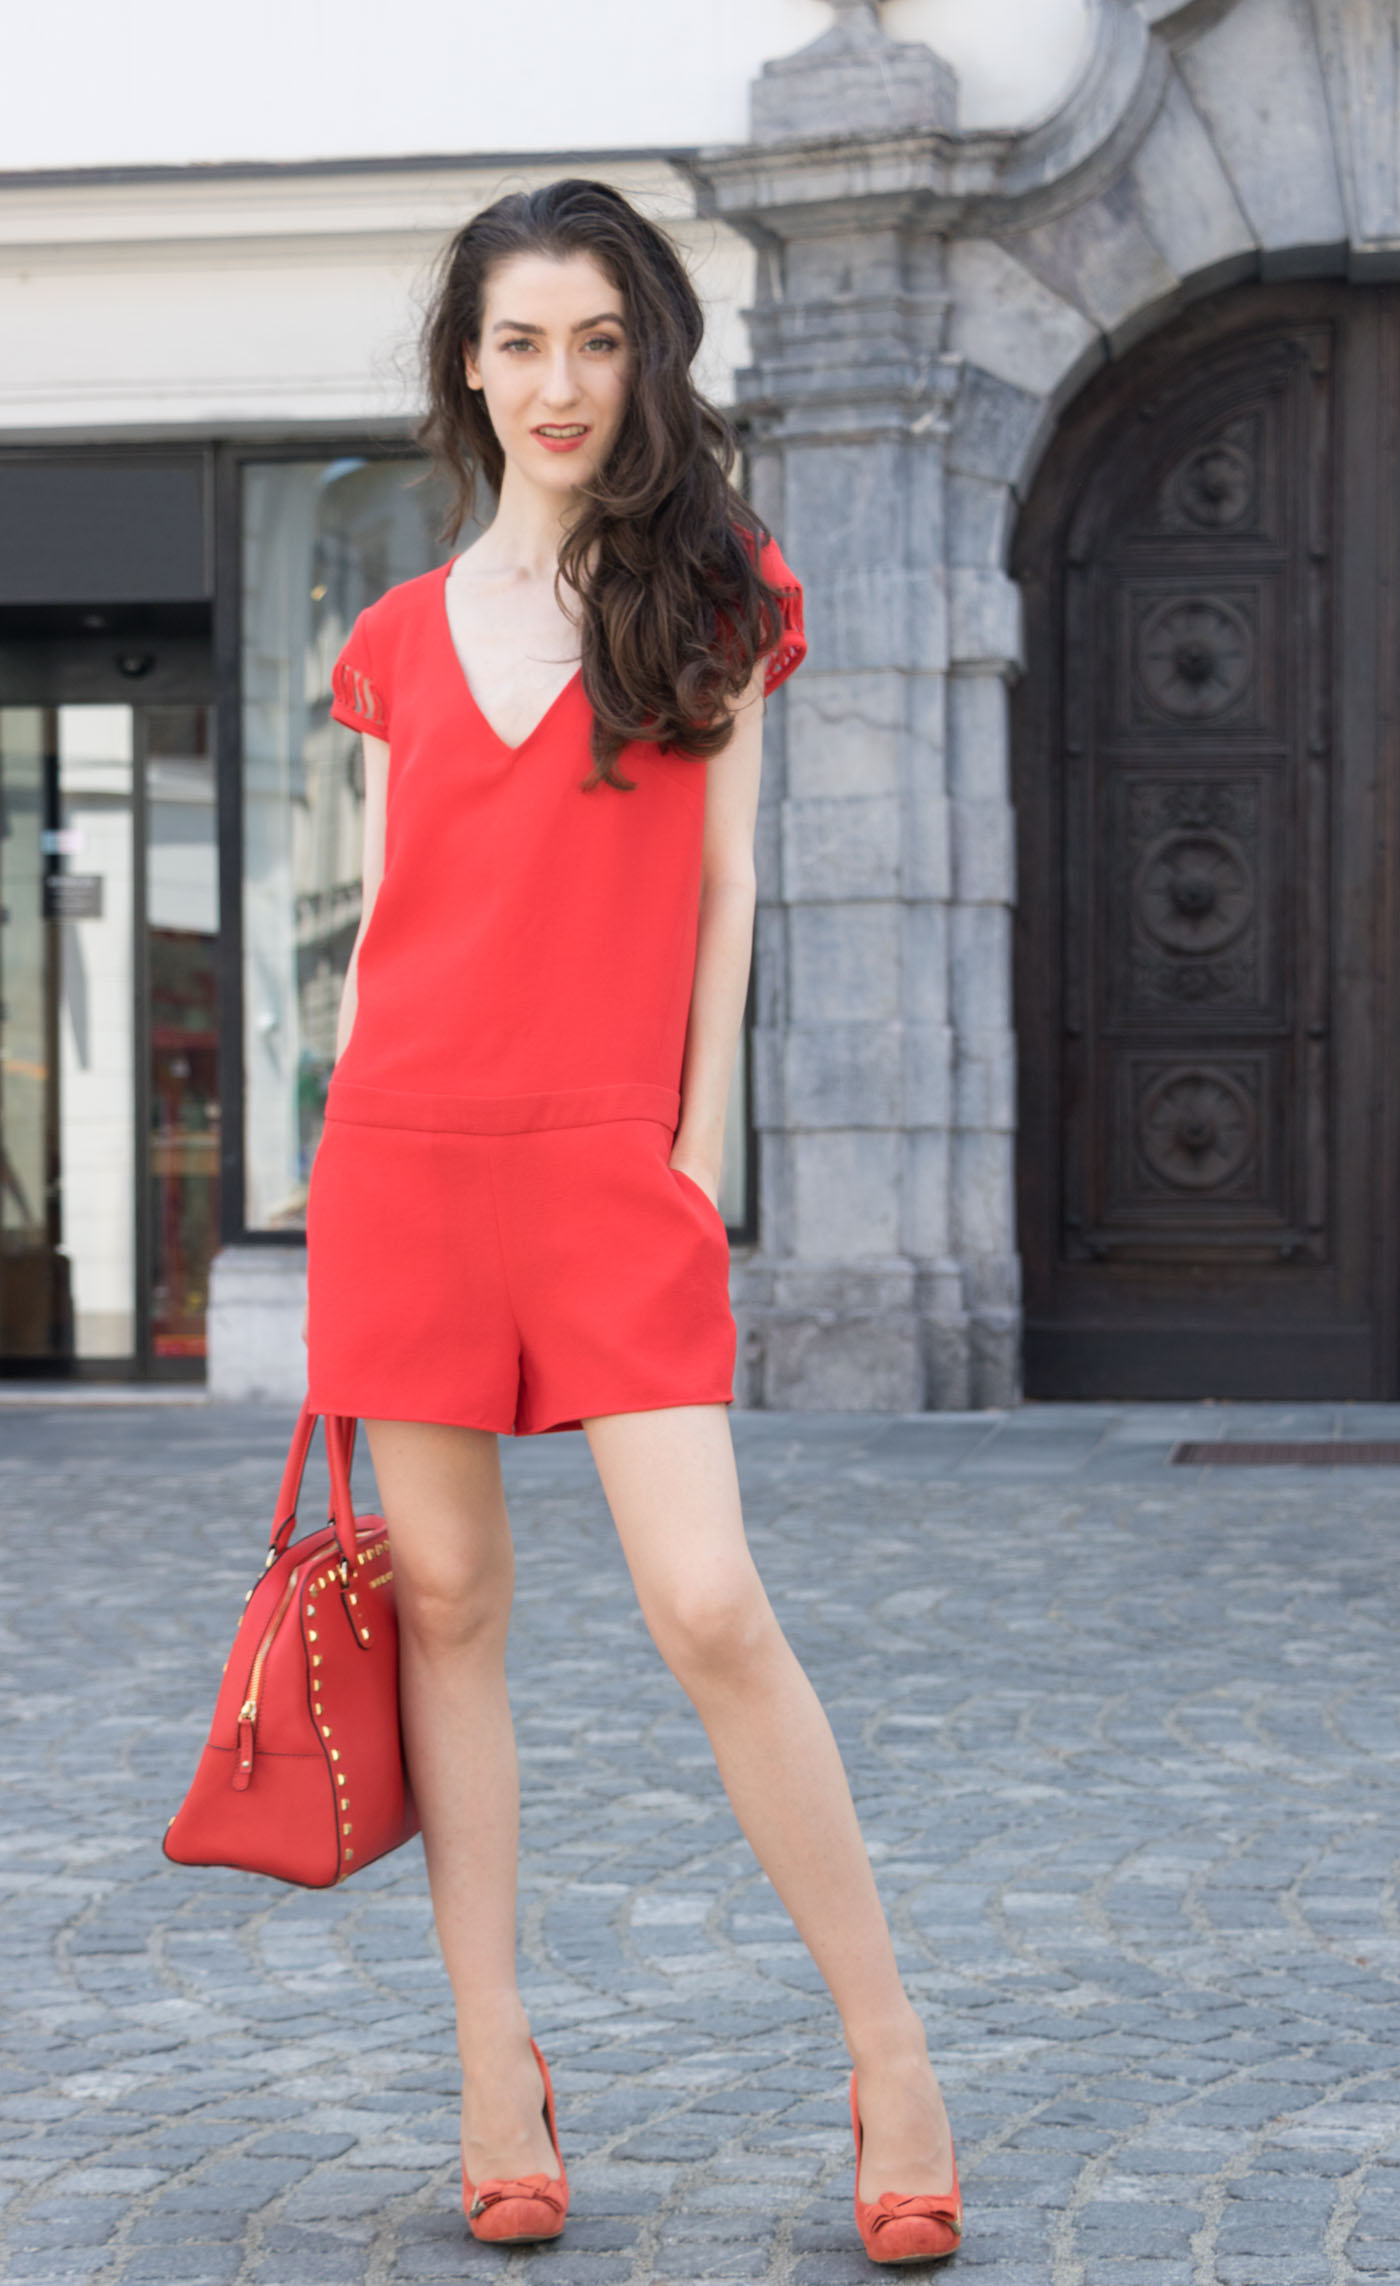 Fashion Blogger Veronika Lipar of Brunette from Wall Street on how to wear head to toe red outfit